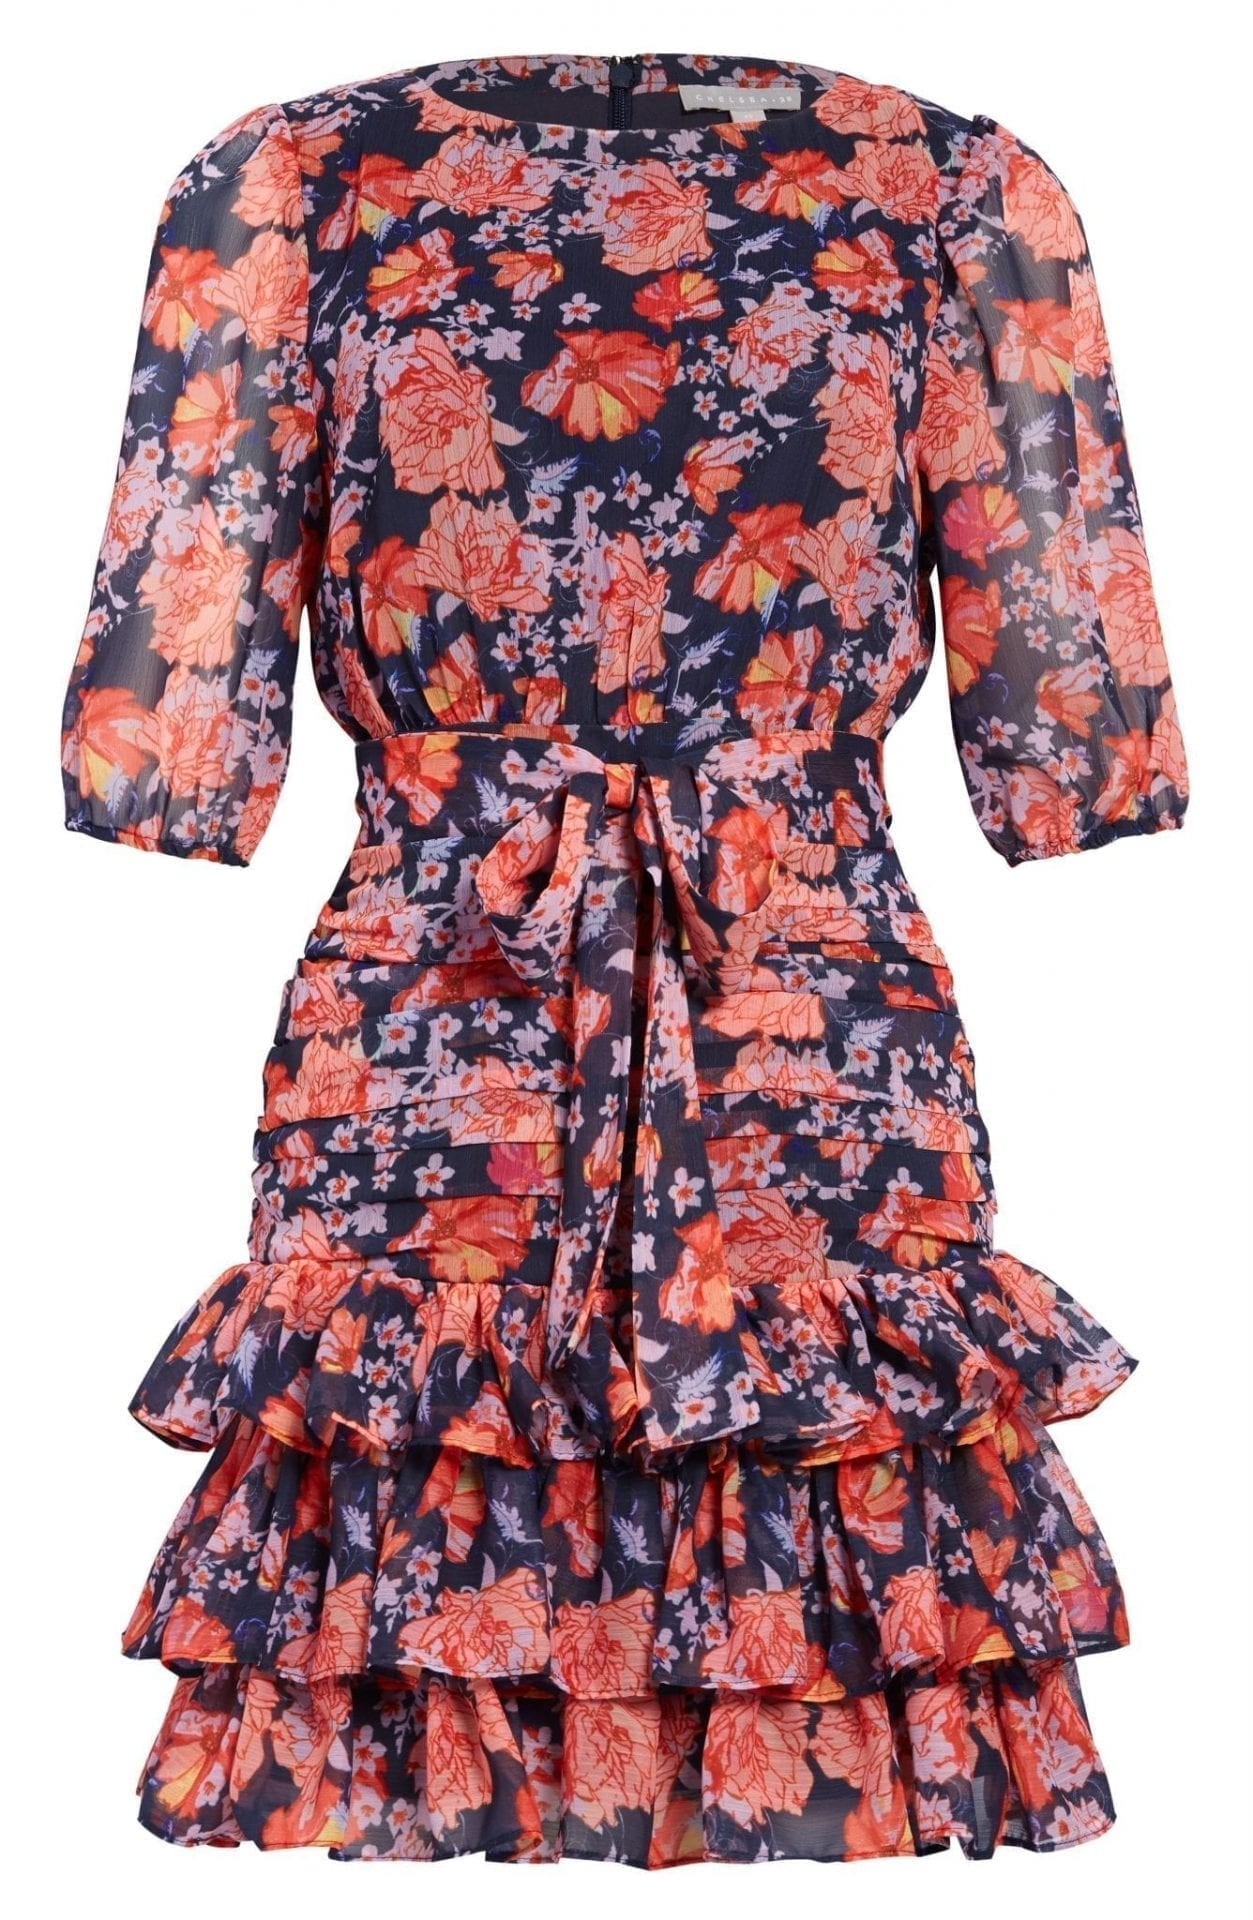 CHELSEA28 Floral Print Tiered Ruffle Dress